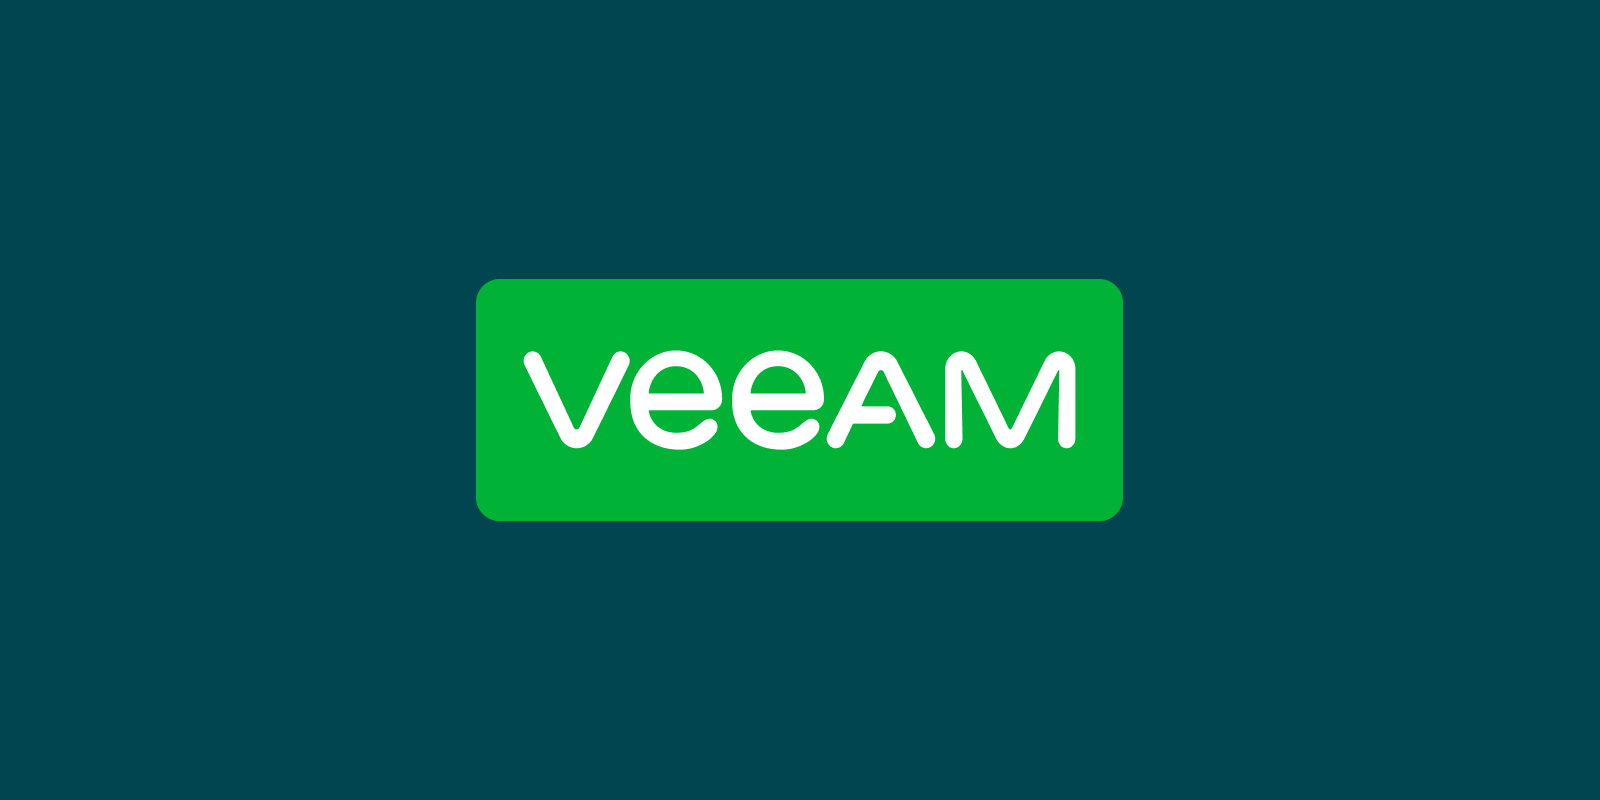 availability for the always on cisco and veeam